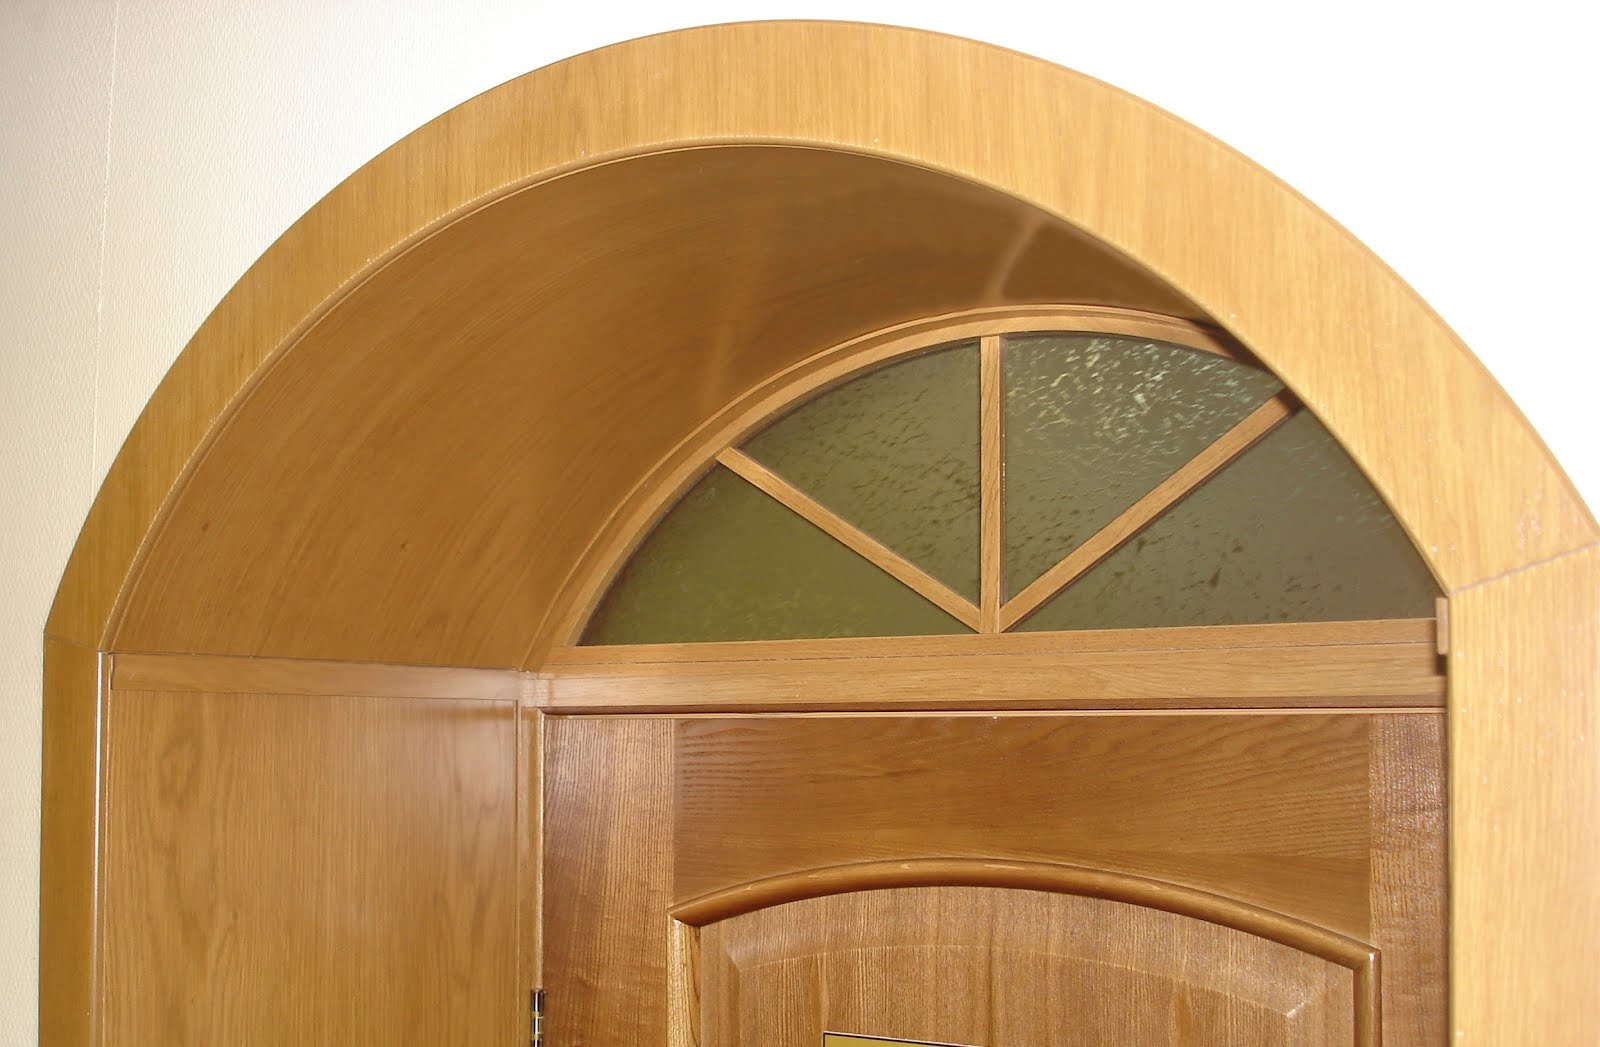 Doors Windows: Window,Door: Photo: Arched, Square, Round Transom Windows